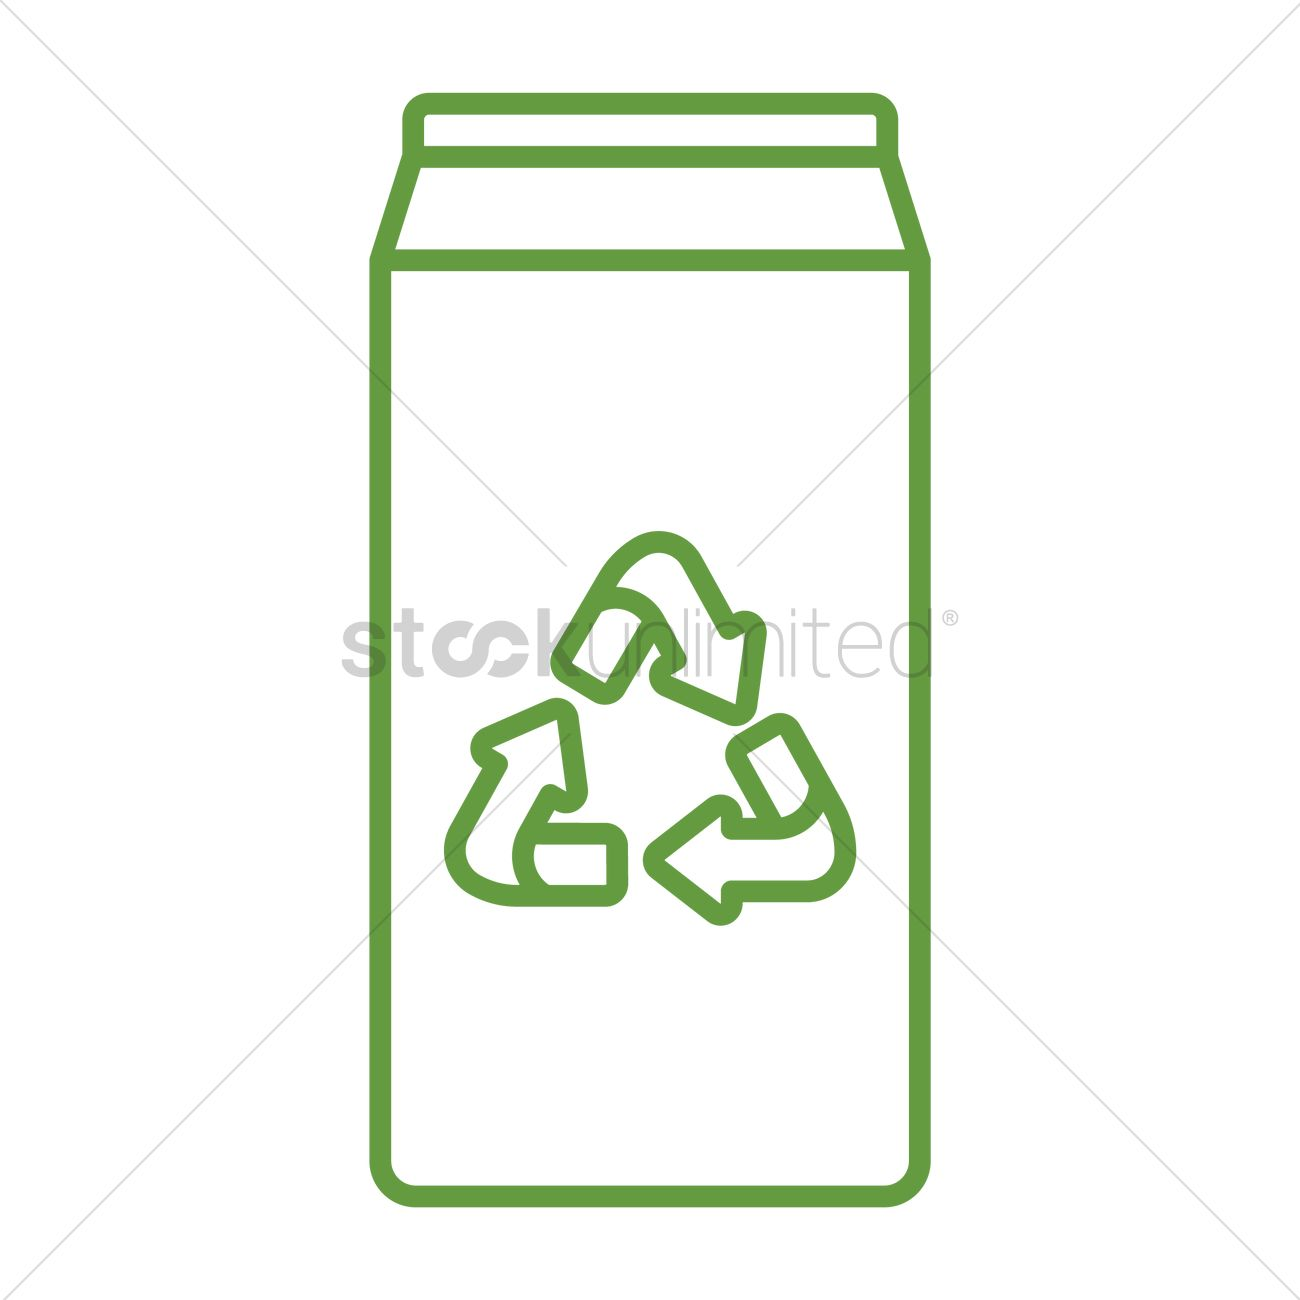 Milk Carton With Recycle Symbol Vector Image 1647683 Stockunlimited